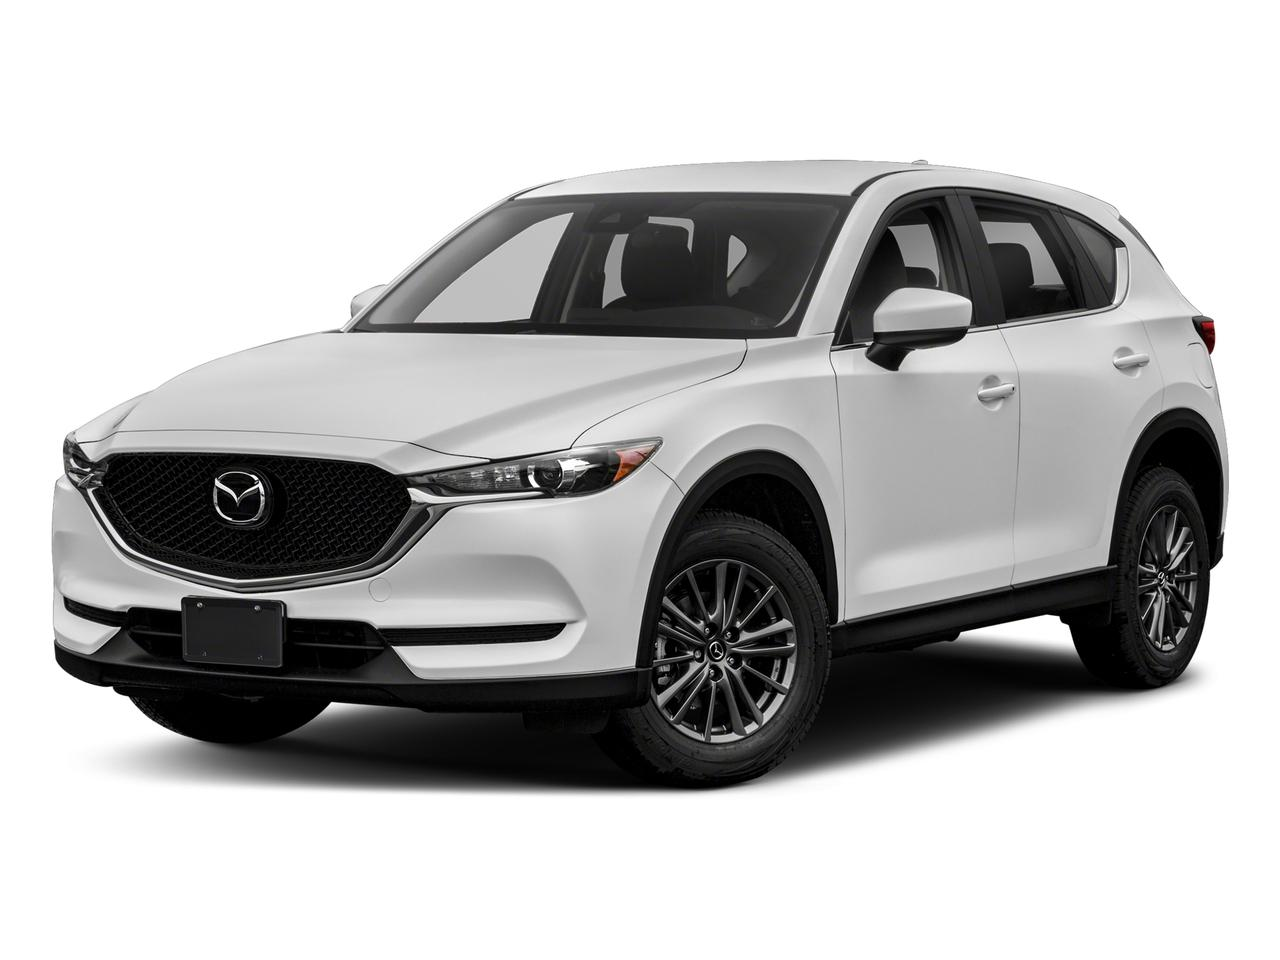 2018 Mazda CX-5 Vehicle Photo in Hamden, CT 06517